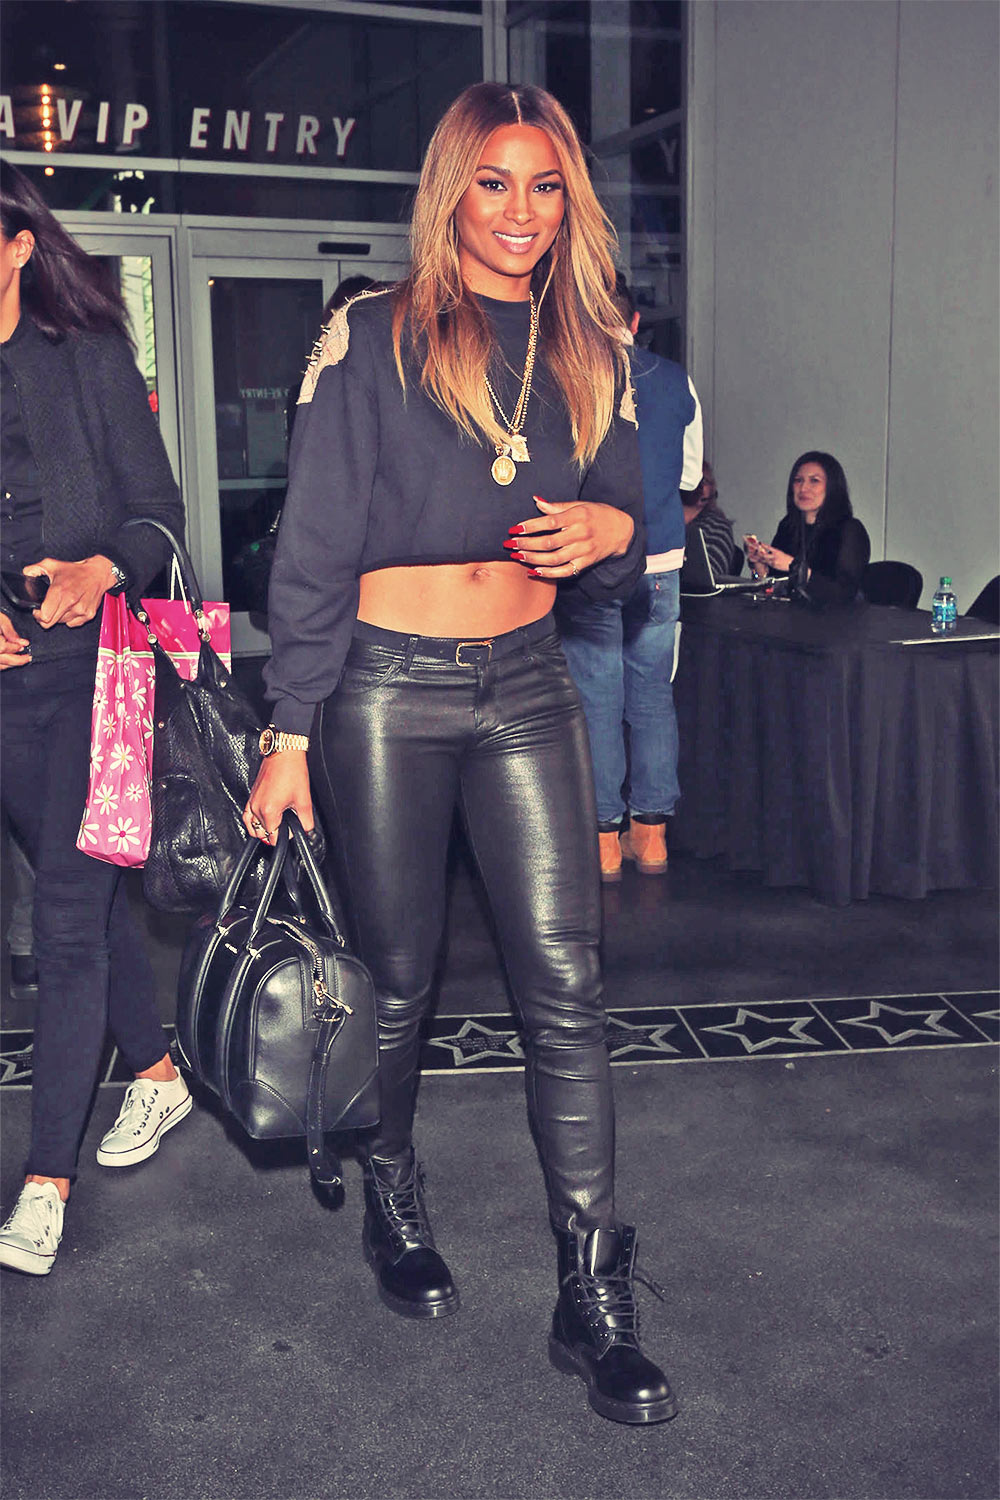 Ciara heads into the Staples Center in LA